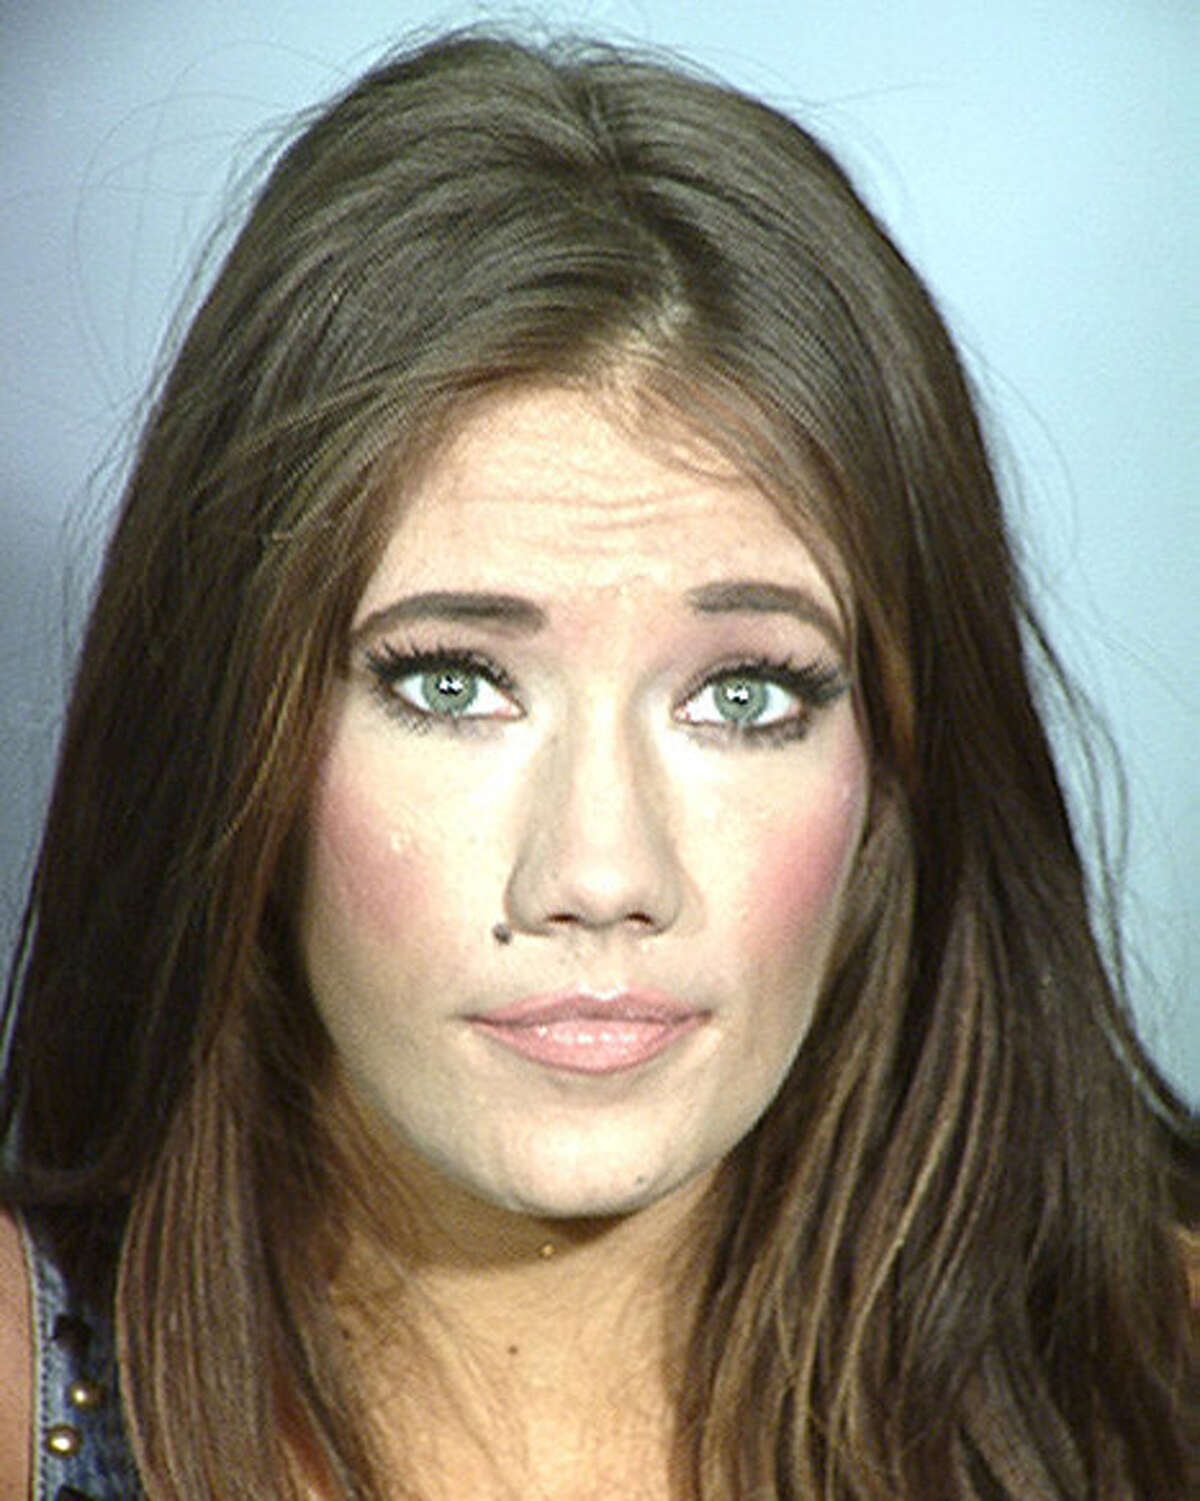 In this handout photo provided by the Las Vegas Metropolitan Police Department, former Miss Nevada USA Katherine Rees is seen in a police booking photo after her arrest on charges including trafficking in a controlled substance, sale of a controlled substance and conspiracy to violate the uniform controlled substances act July 8, 2015 in Las Vegas, Nevada. According to court papers filed Monday Rees allegedly sold methamphetamine in September of last year and was found with methamphetamines at a later date. (Photo by Las Vegas Metropolitan Police Department via Getty Images)